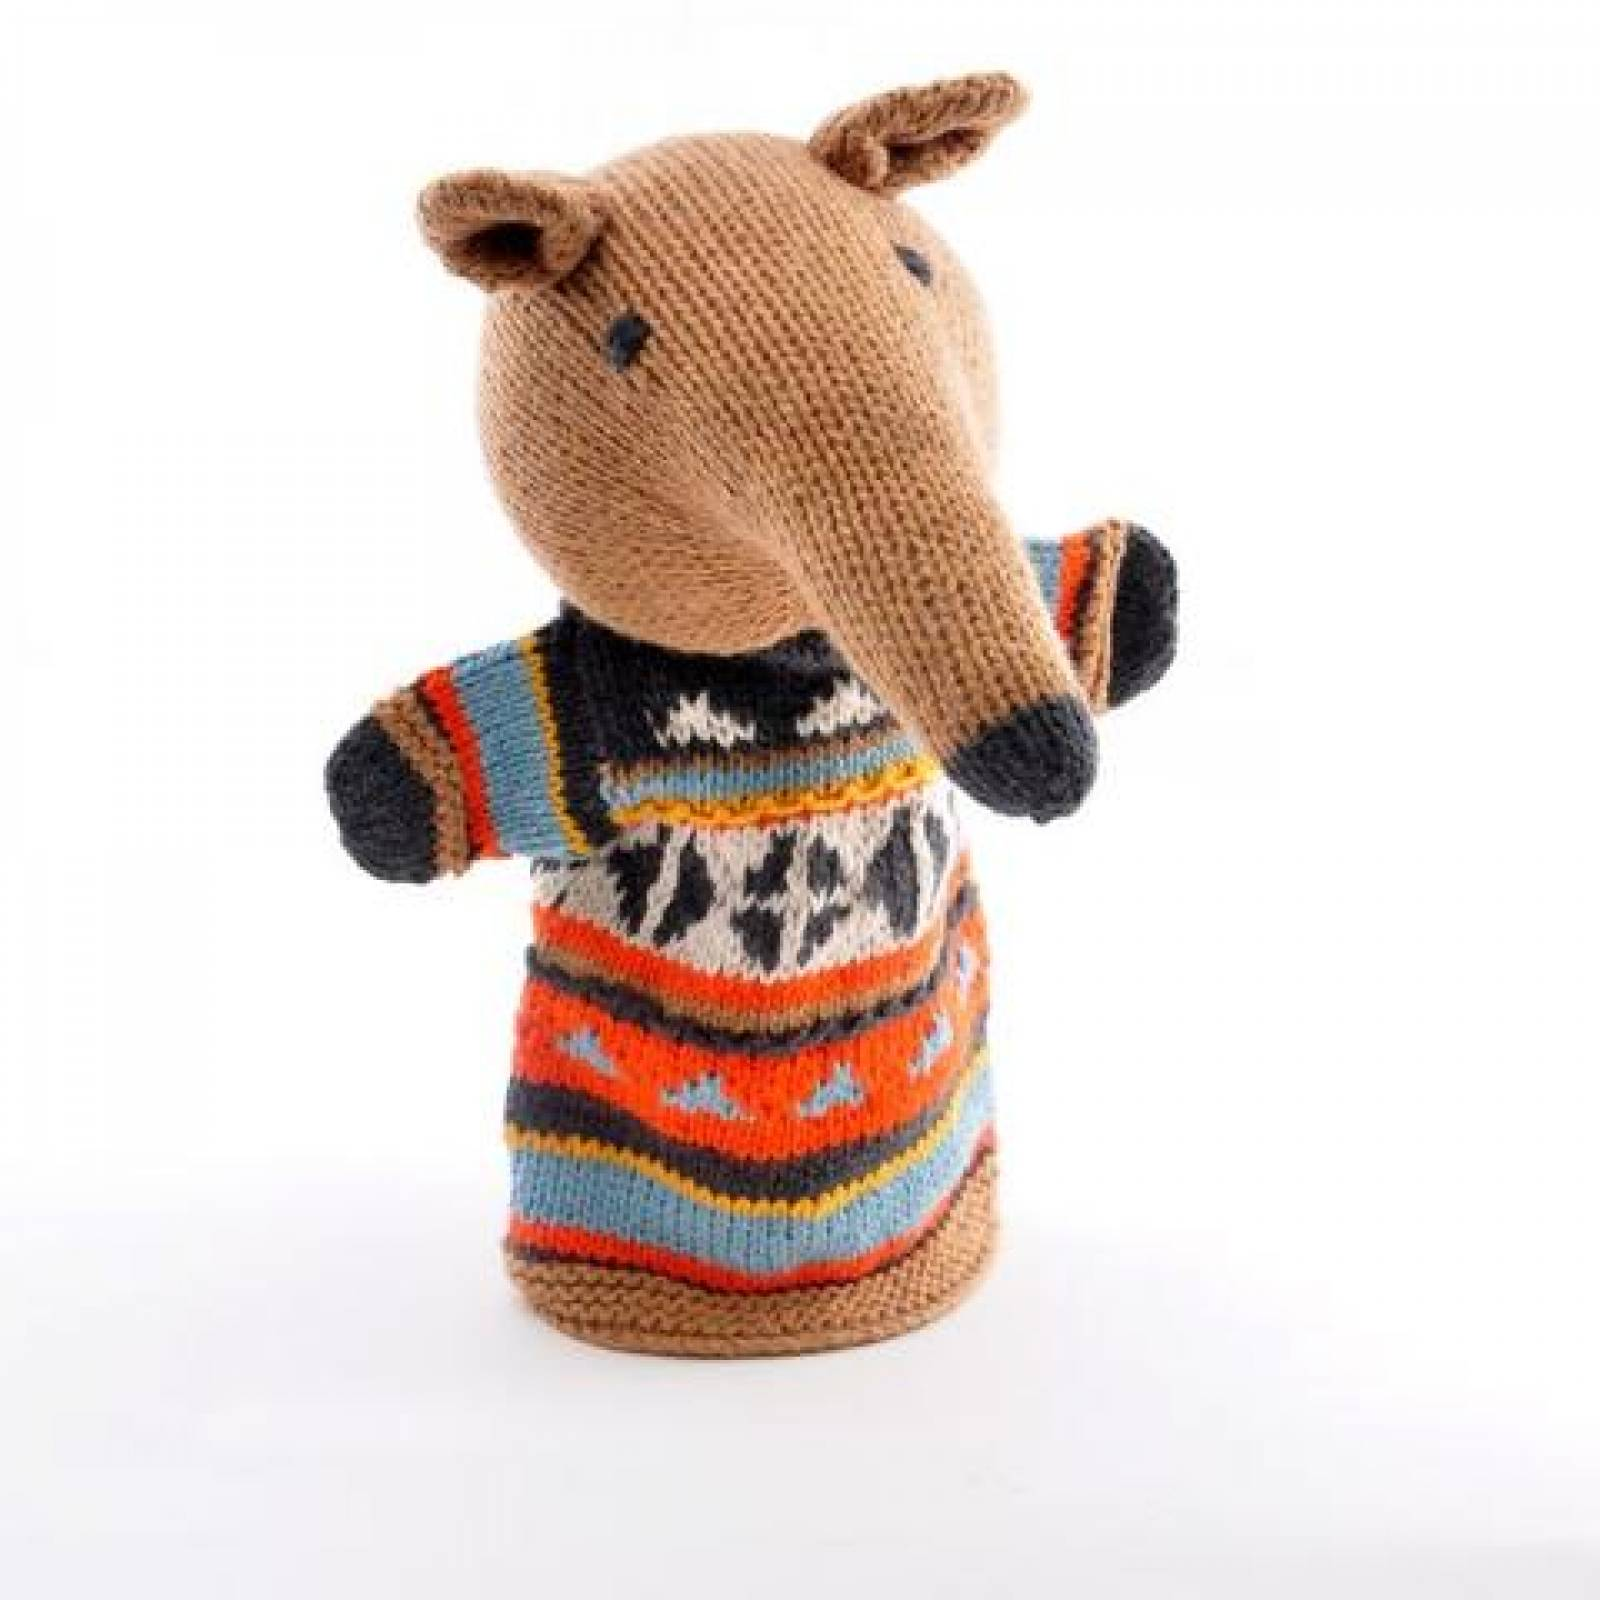 Anteater - Hand Knitted Glove Puppet Organic Cotton